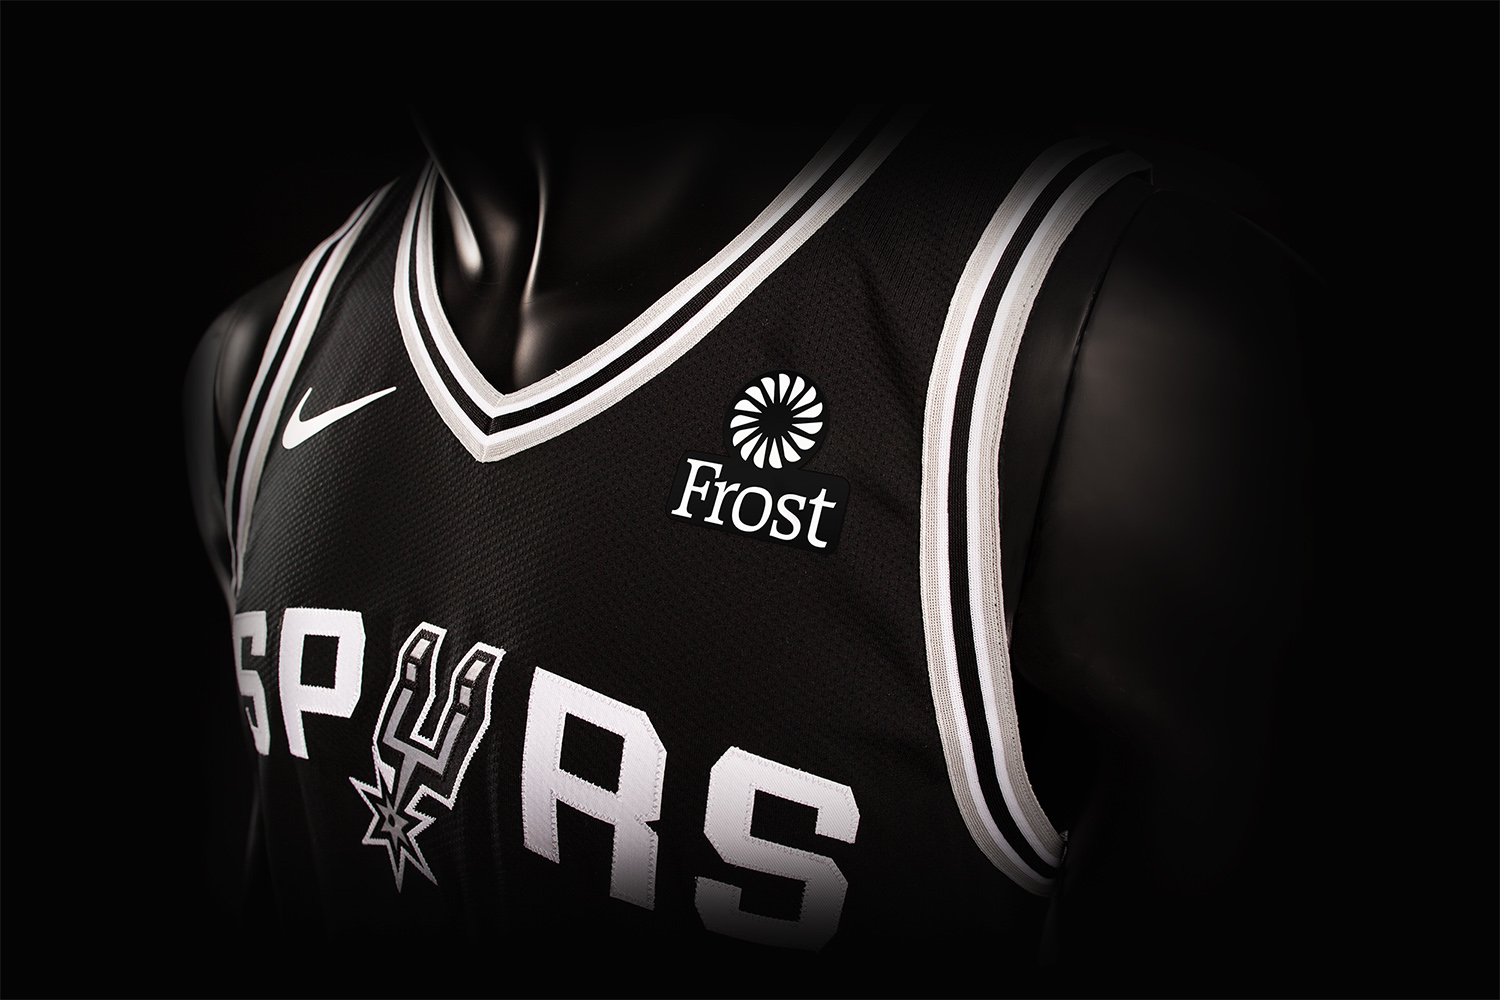 e43046693d2 For the first time ever, Spurs jerseys will feature a corporate logo  beginning this season - San Antonio Express-News